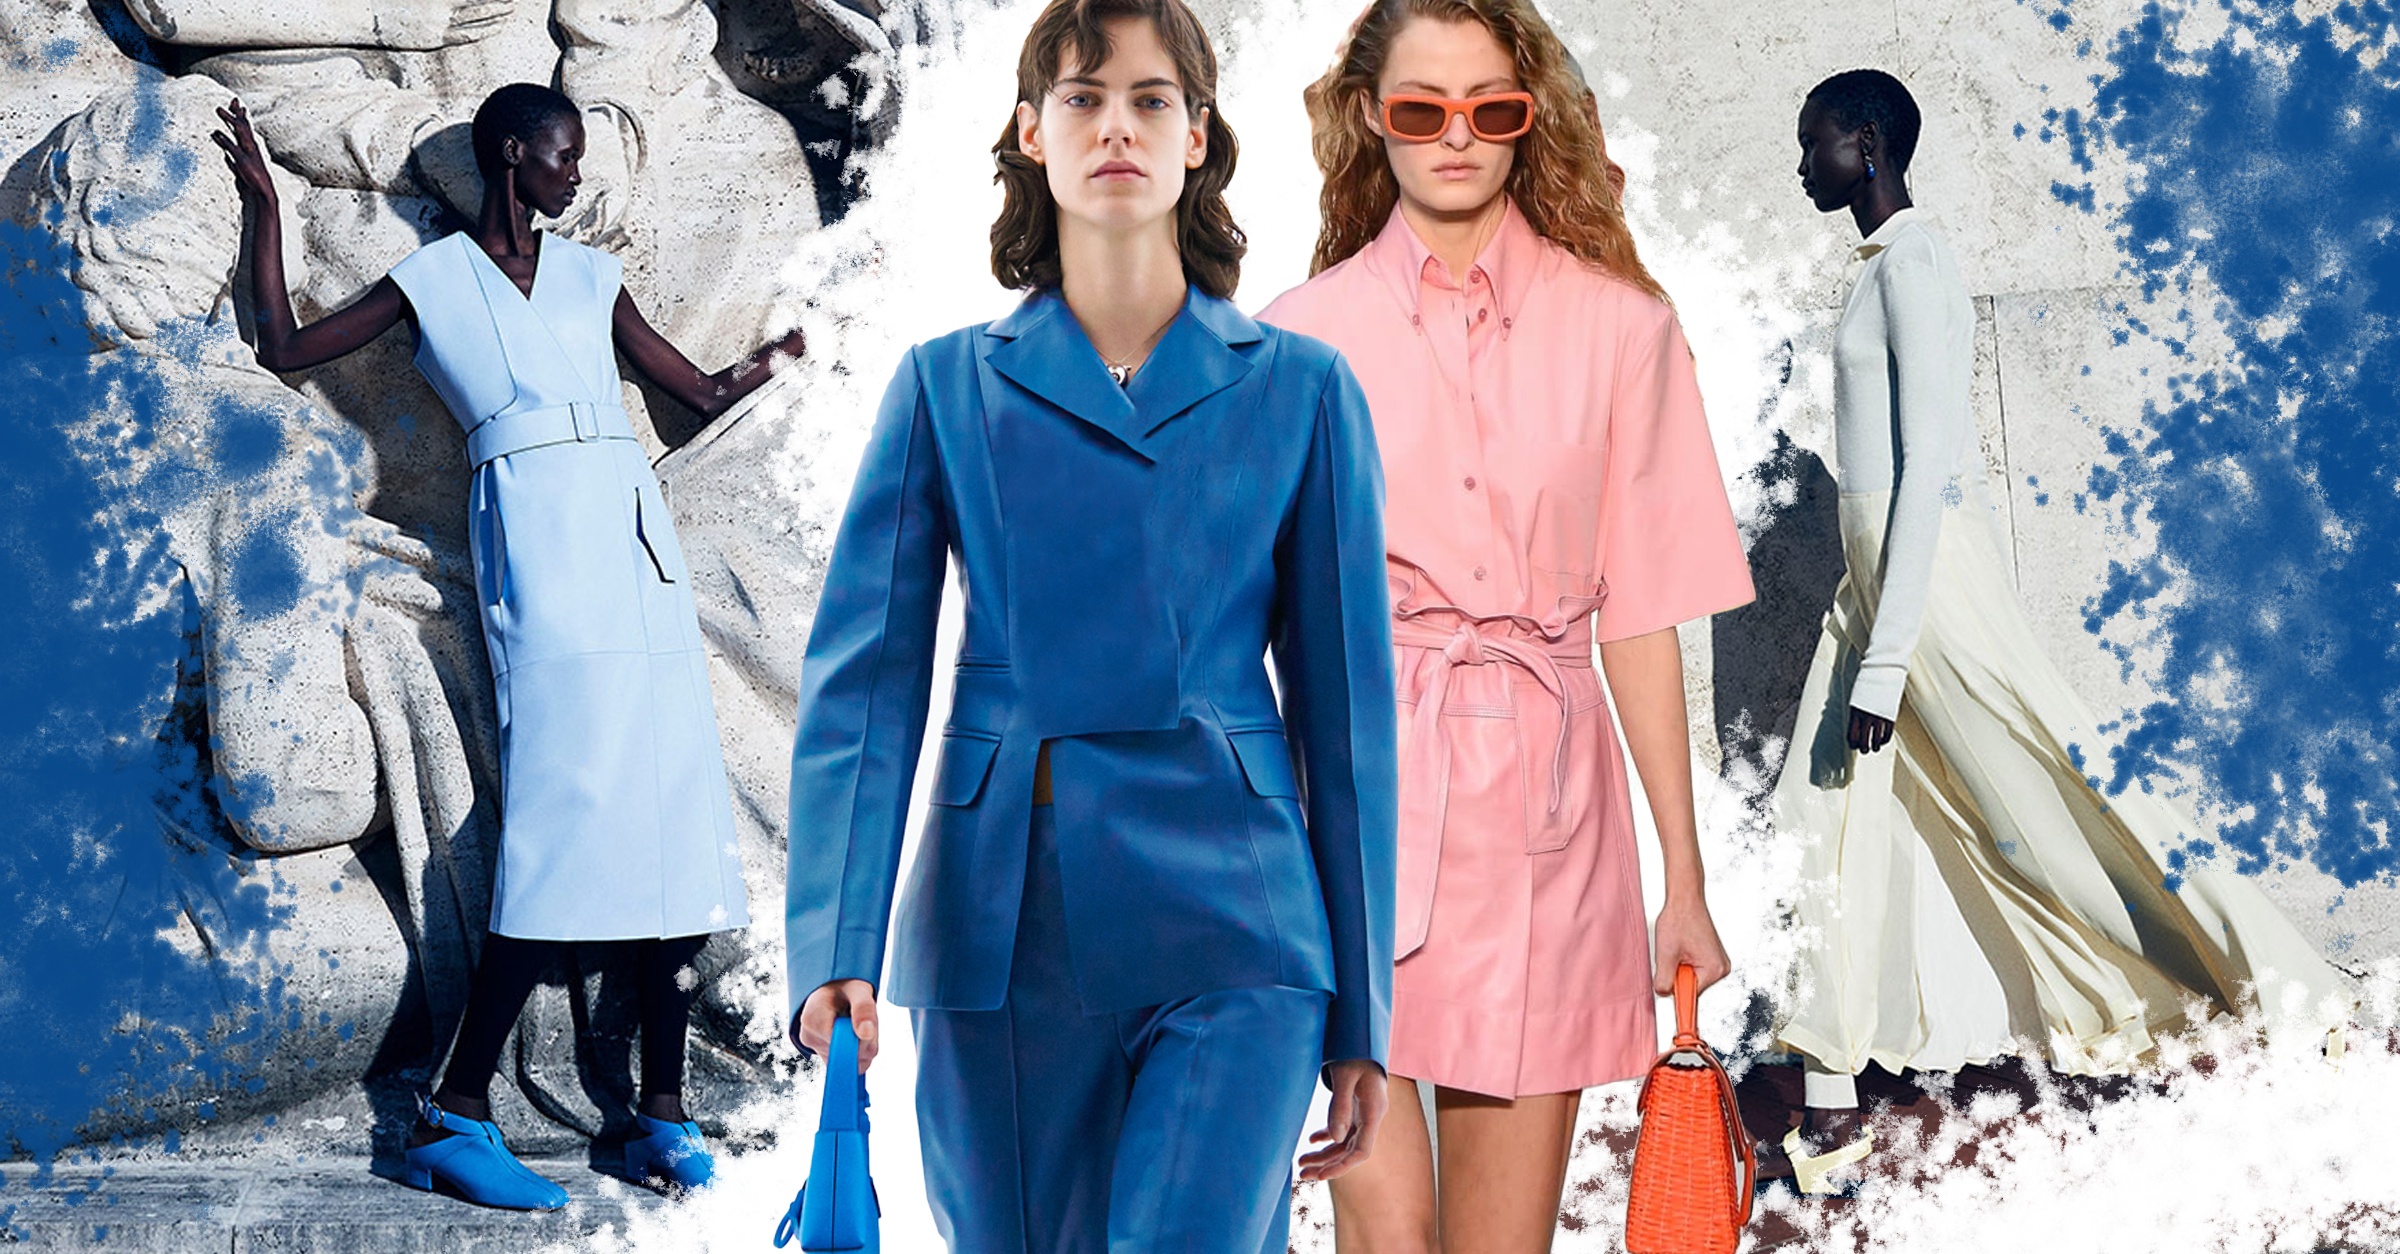 Ferragamo's Strategy: More Accessible Pricing  to Target Younger Generations?